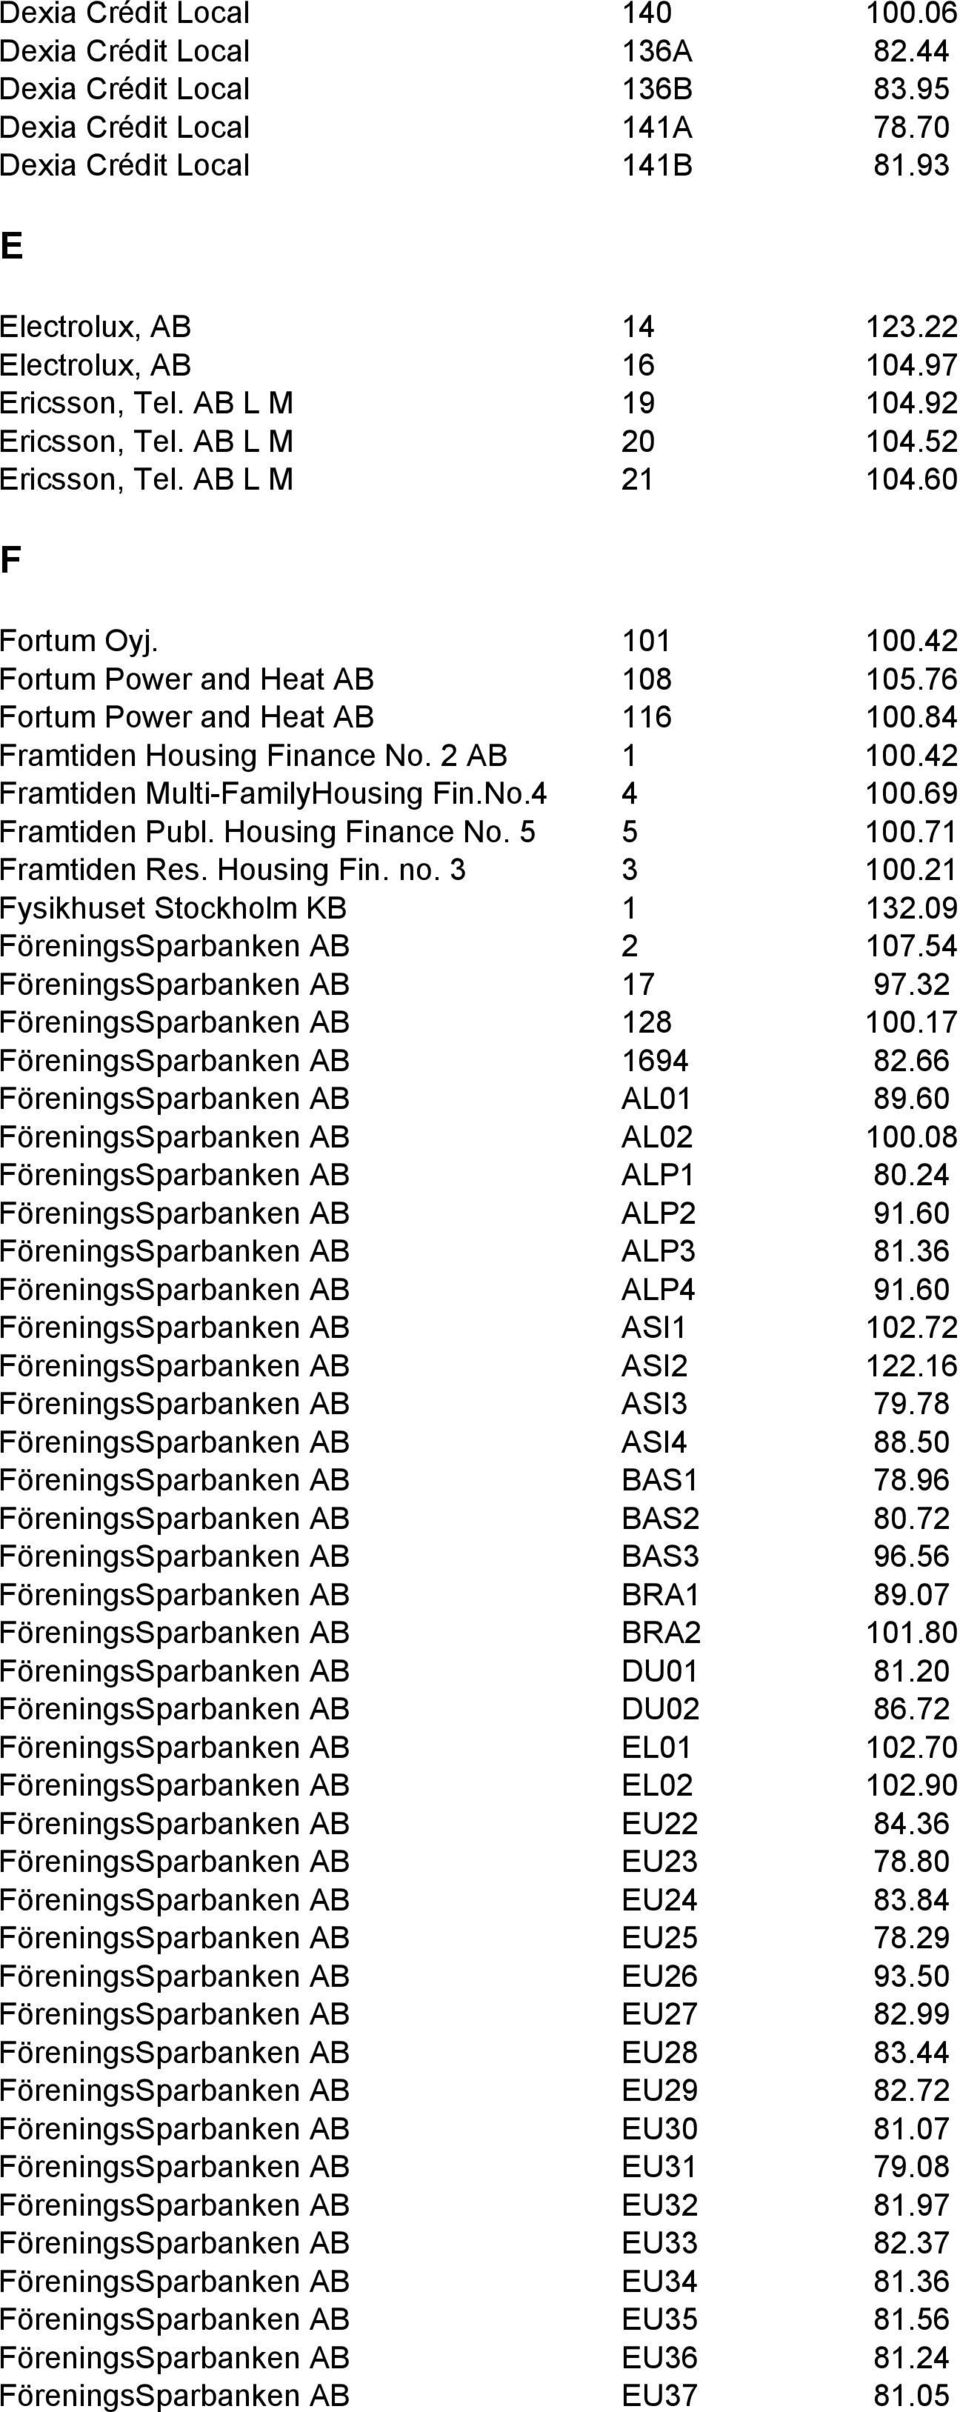 84 Framtiden Housing Finance No. 2 AB 1 100.42 Framtiden Multi-FamilyHousing Fin.No.4 4 100.69 Framtiden Publ. Housing Finance No. 5 5 100.71 Framtiden Res. Housing Fin. no. 3 3 100.